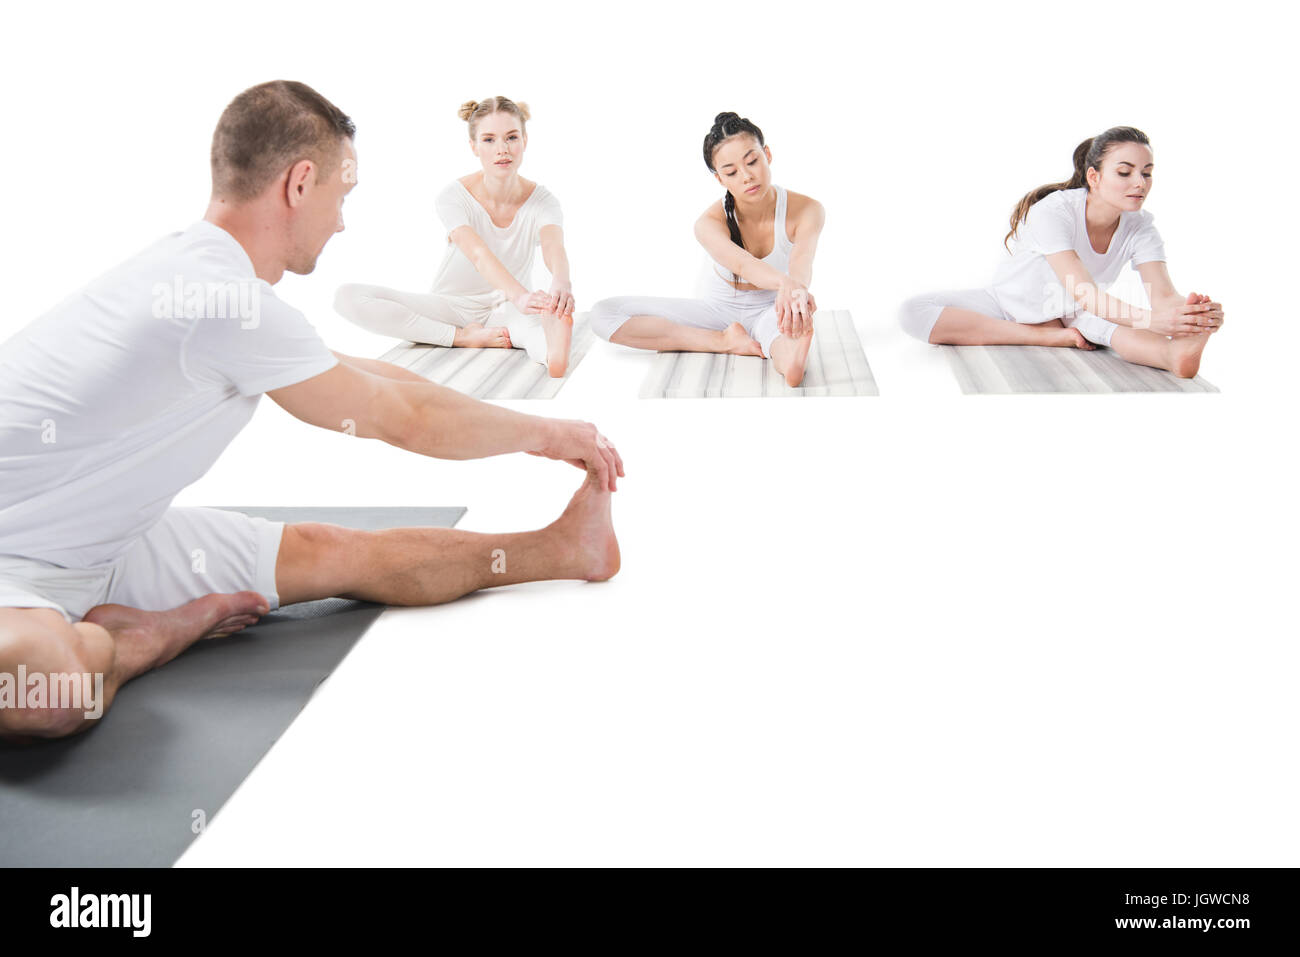 man and women practicing yoga together on yoga mats isolated on white - Stock Image